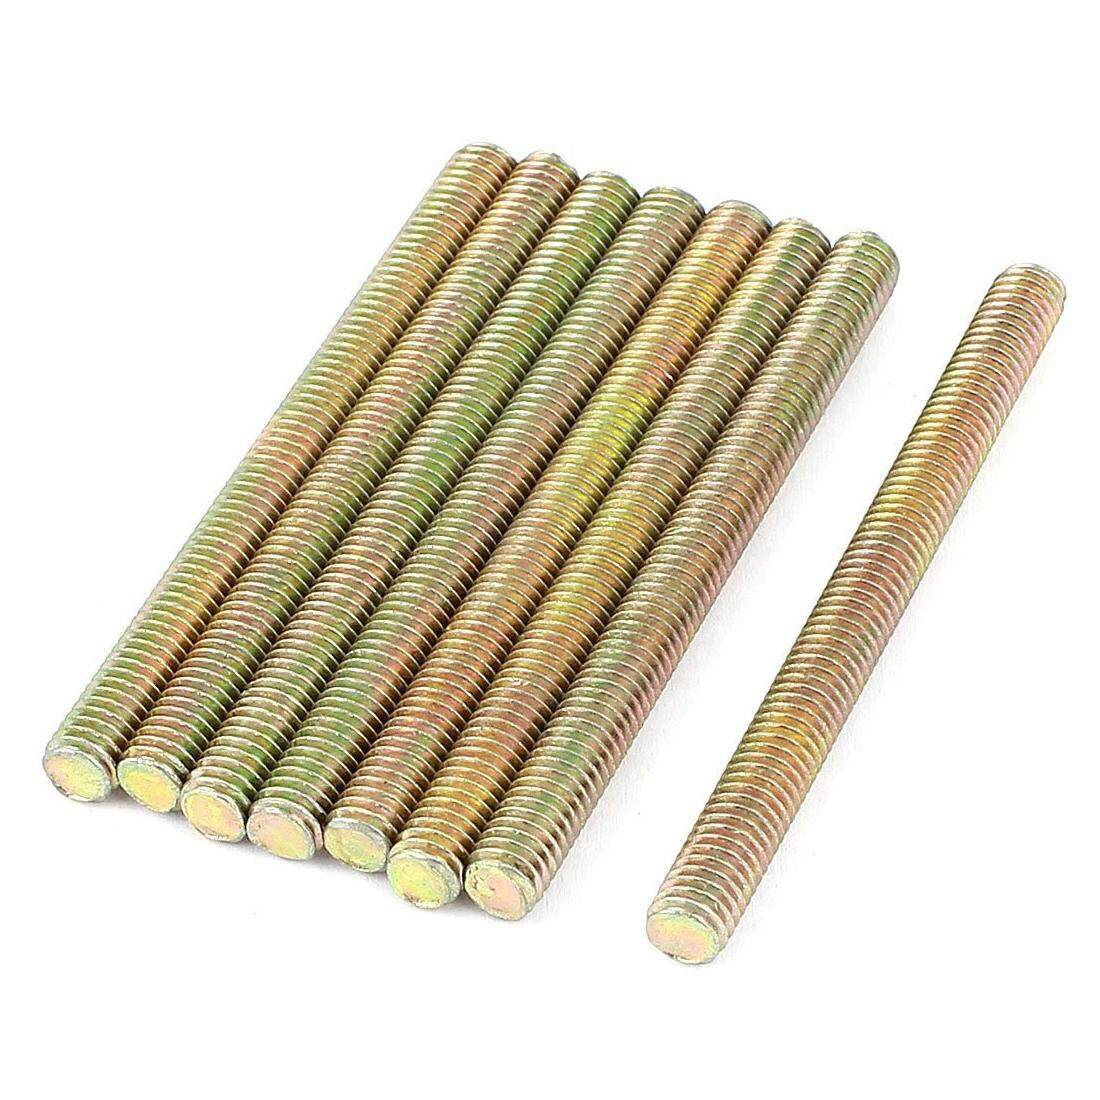 1 mm Pitch M6 x 70mm Male Threaded Rod Bar Bronze Tone 8 Pcs - intl image